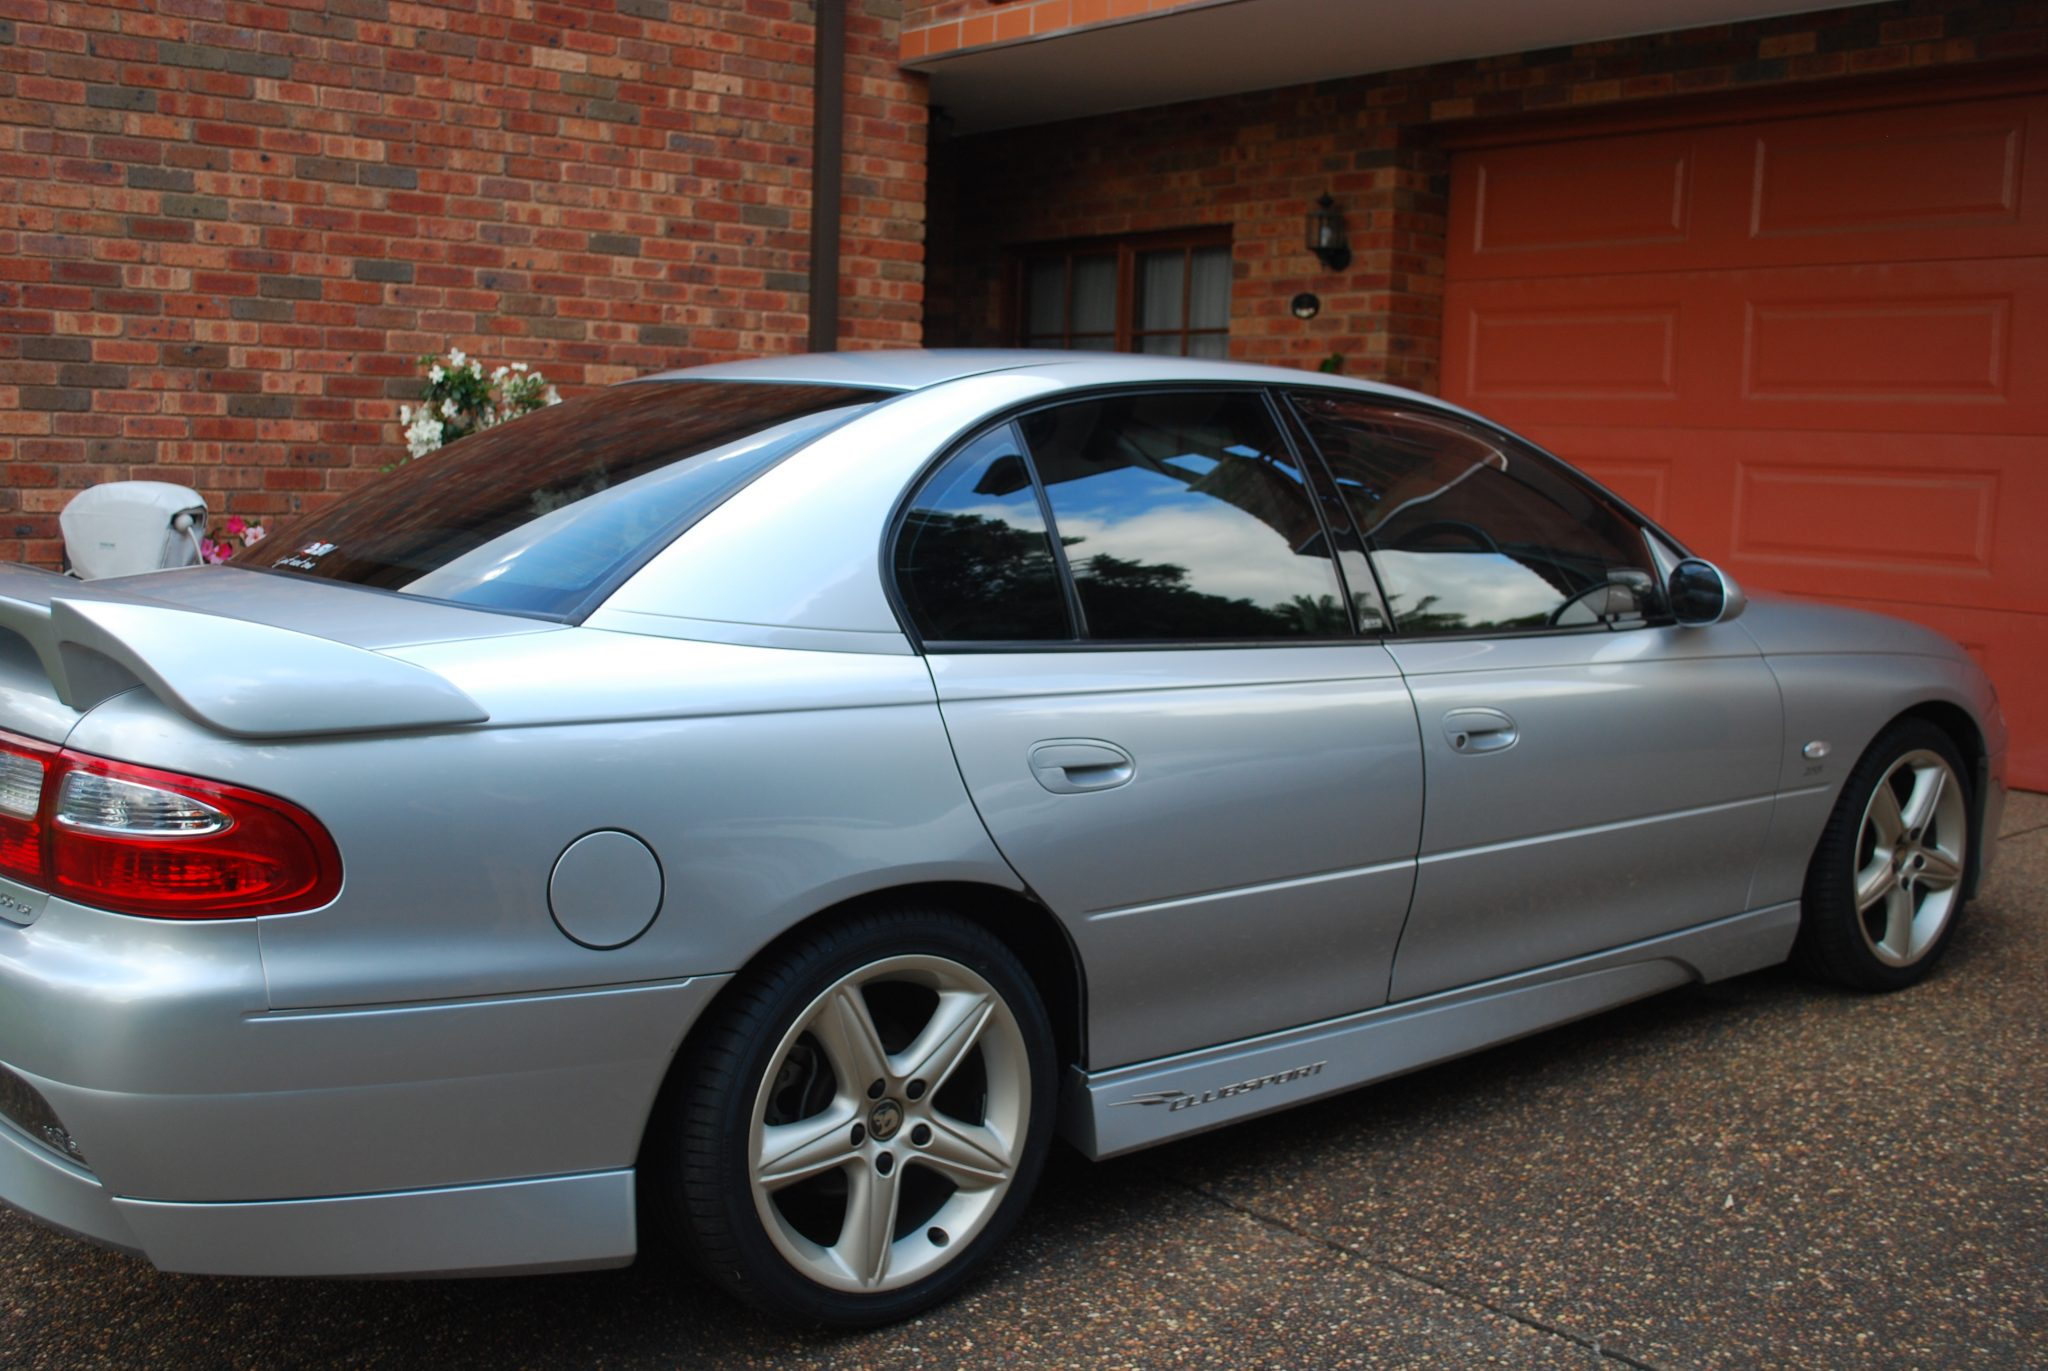 For Sale – VXII ClubSport – HSV Owners Club of NSW (Inc HDT) Inc